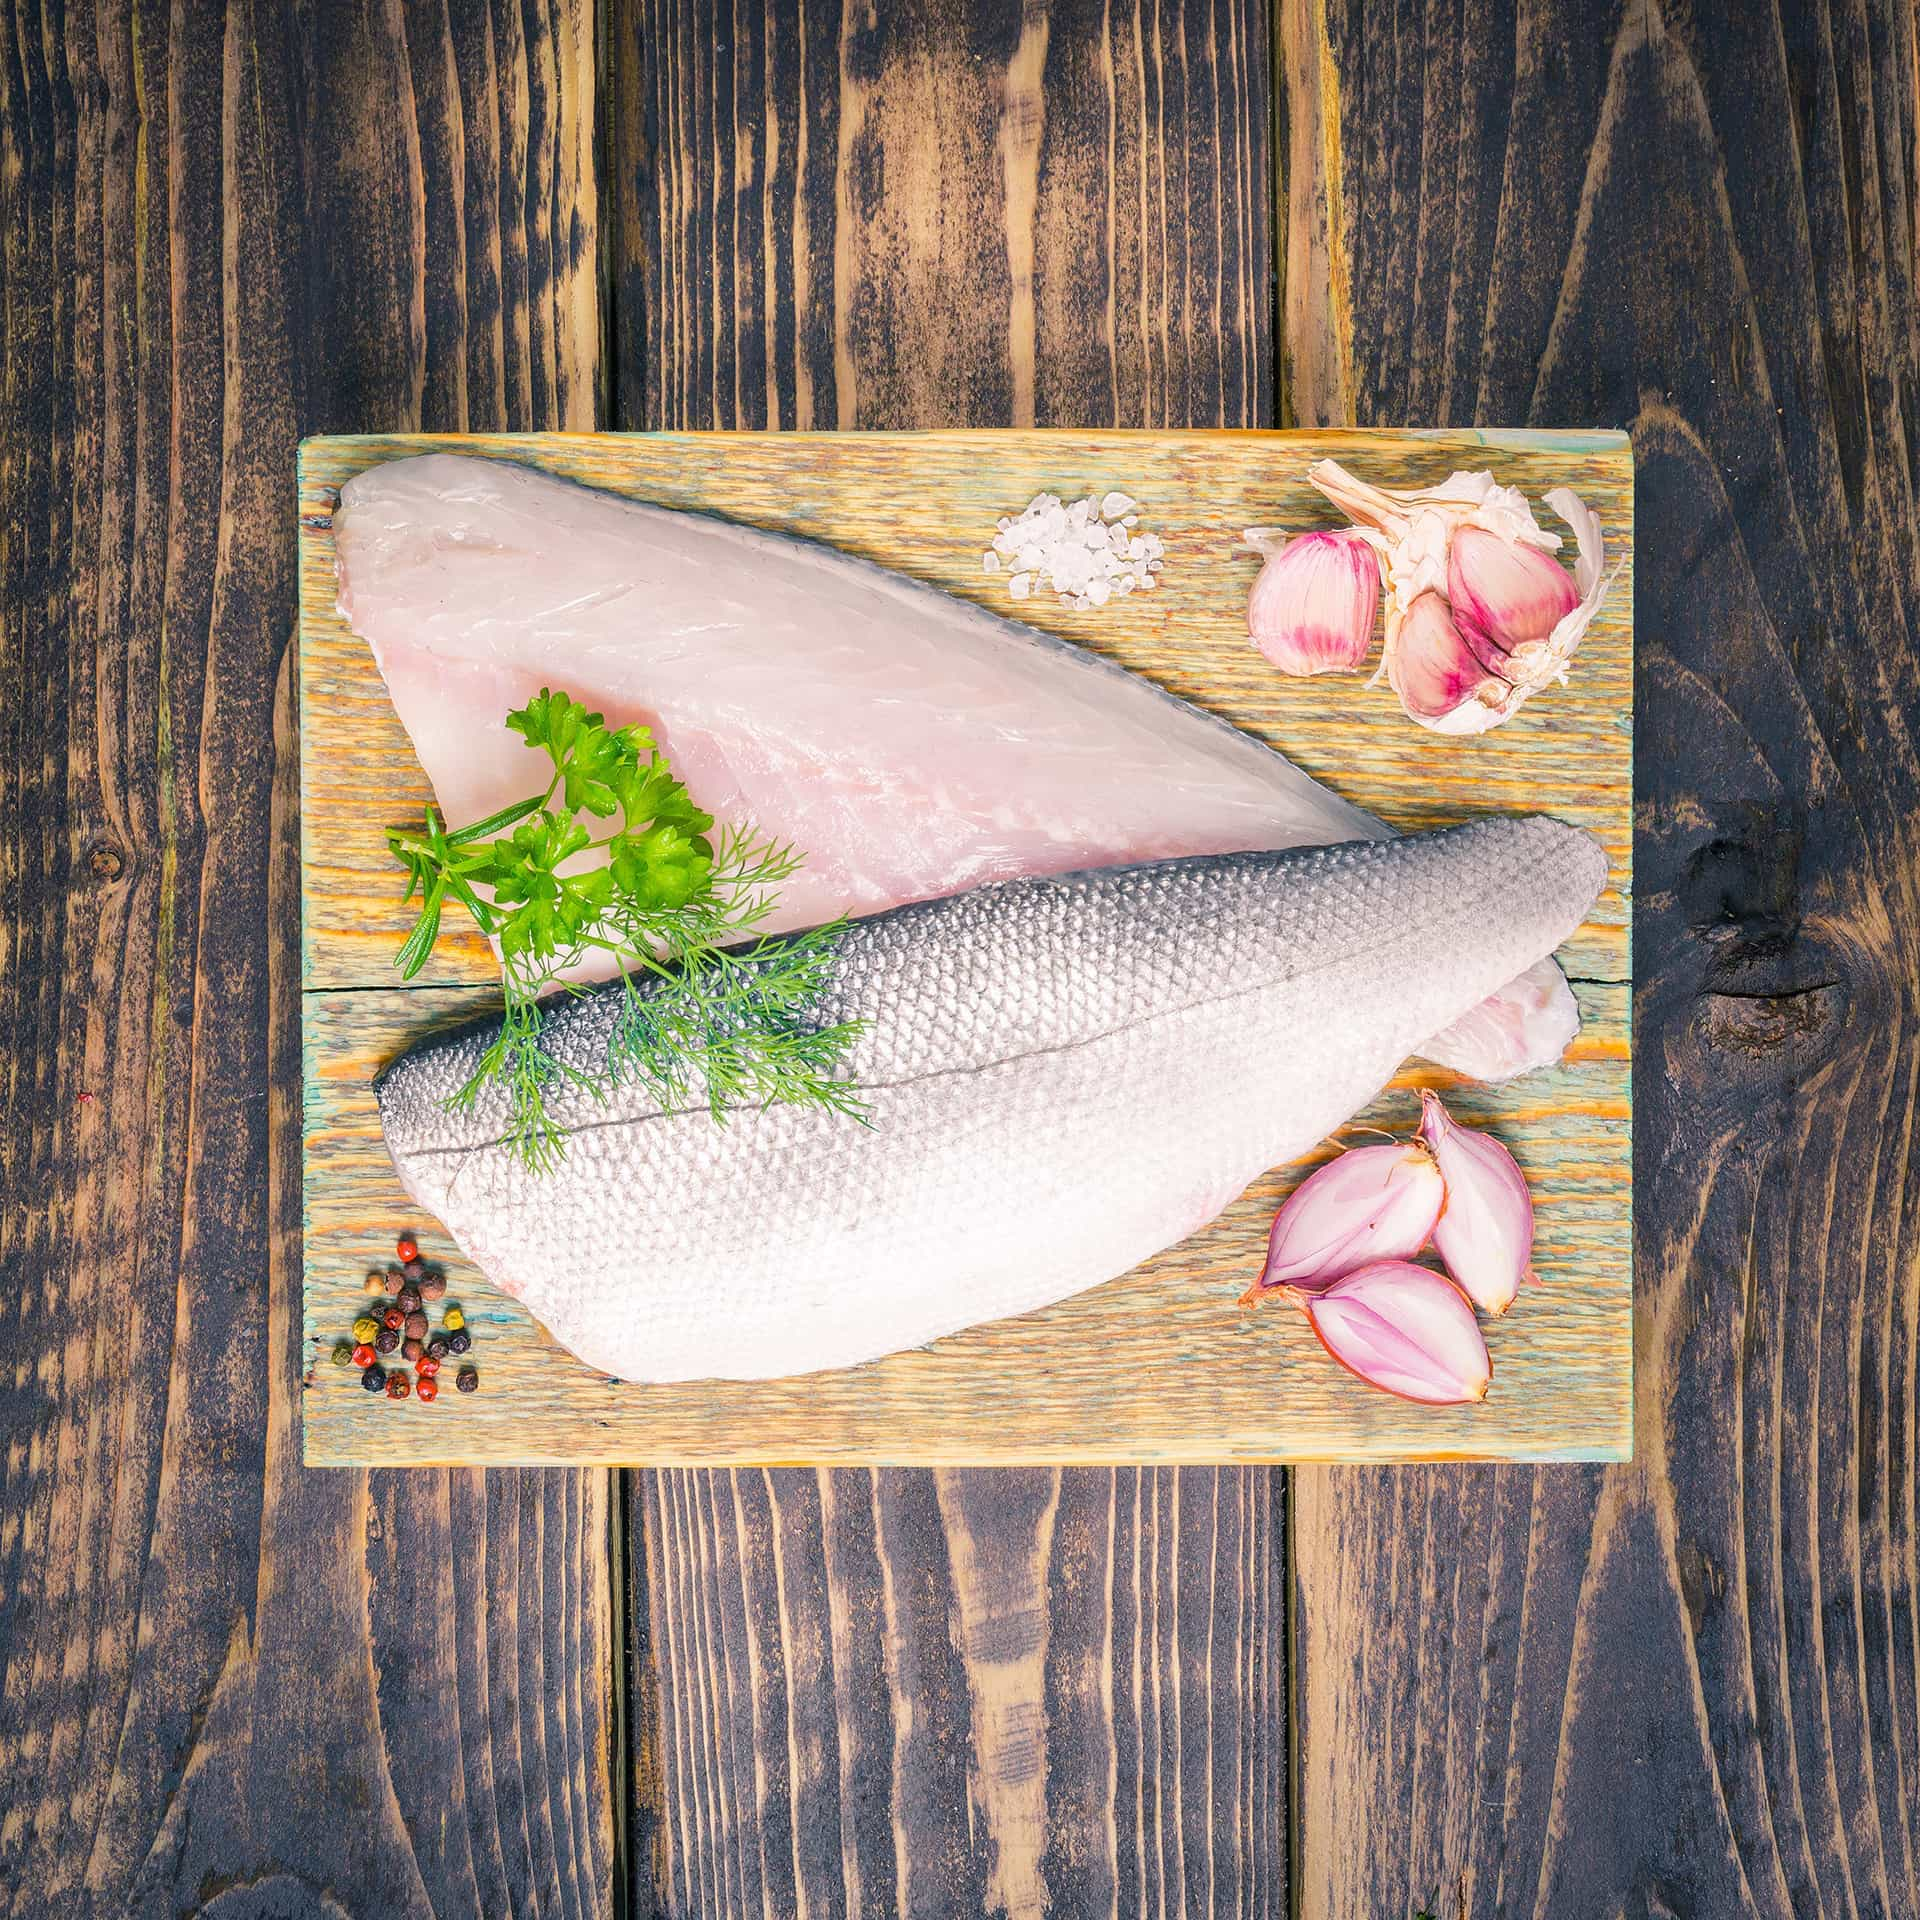 Sea bass fillets on a chopping board